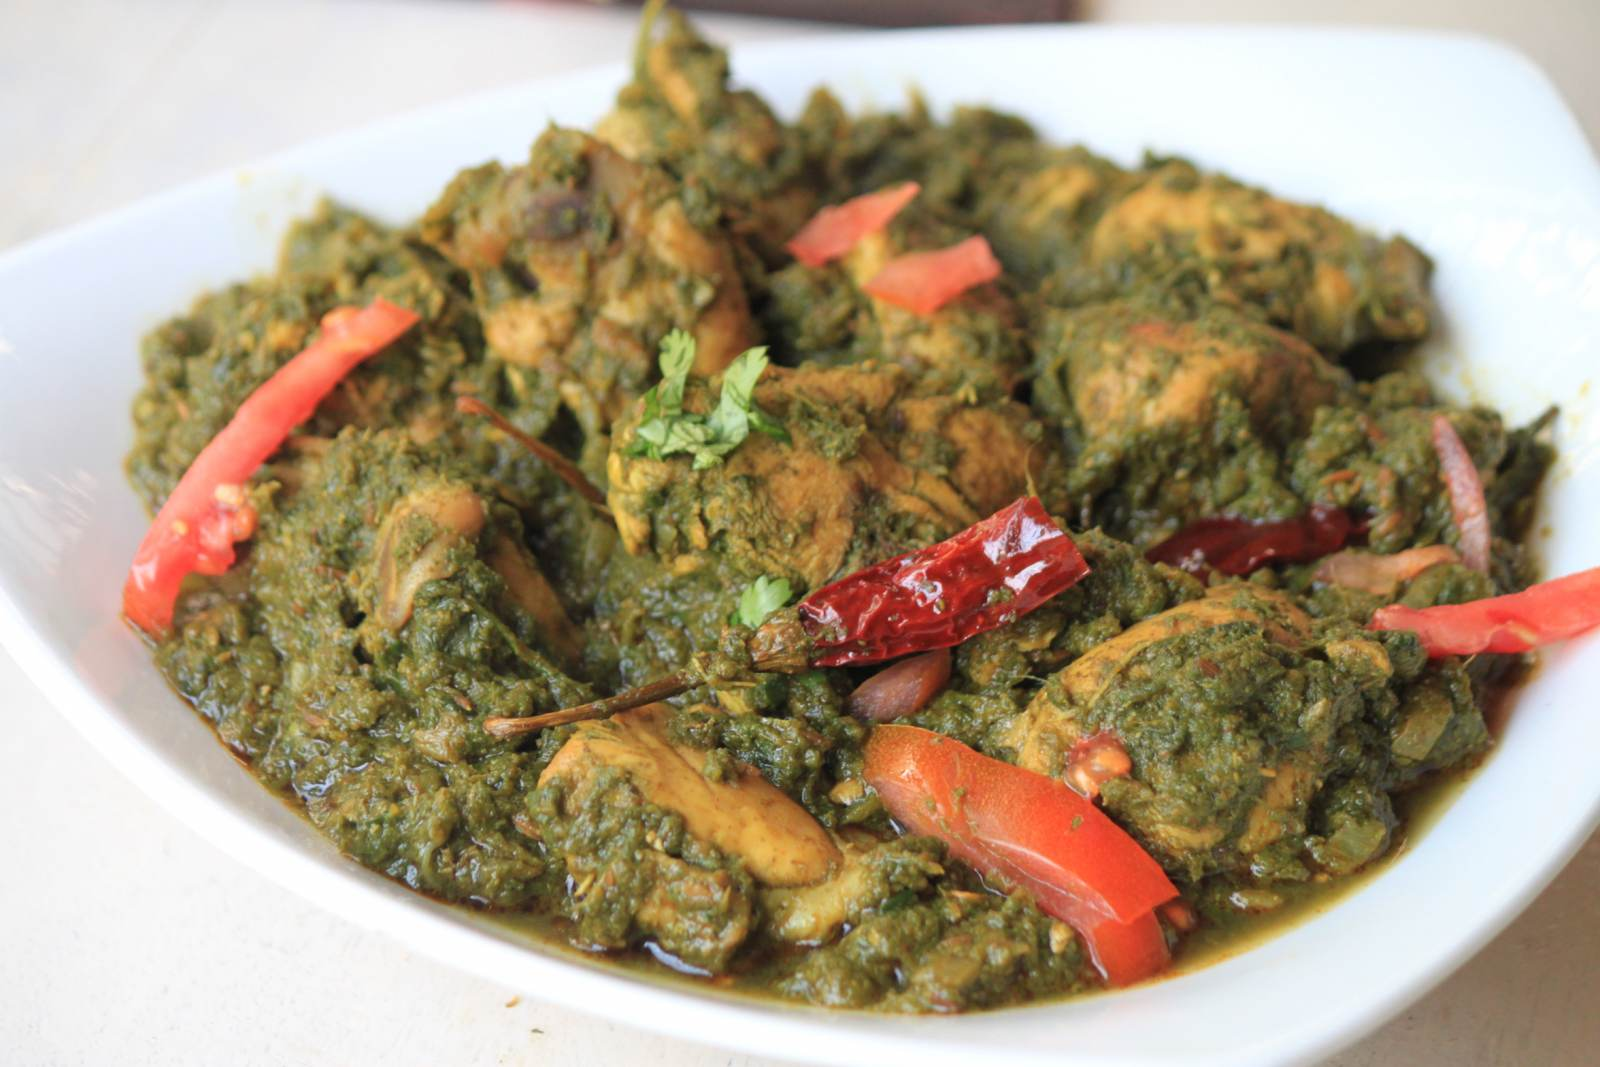 Palak Chicken Curry Recipe - Saag Wala Chicken